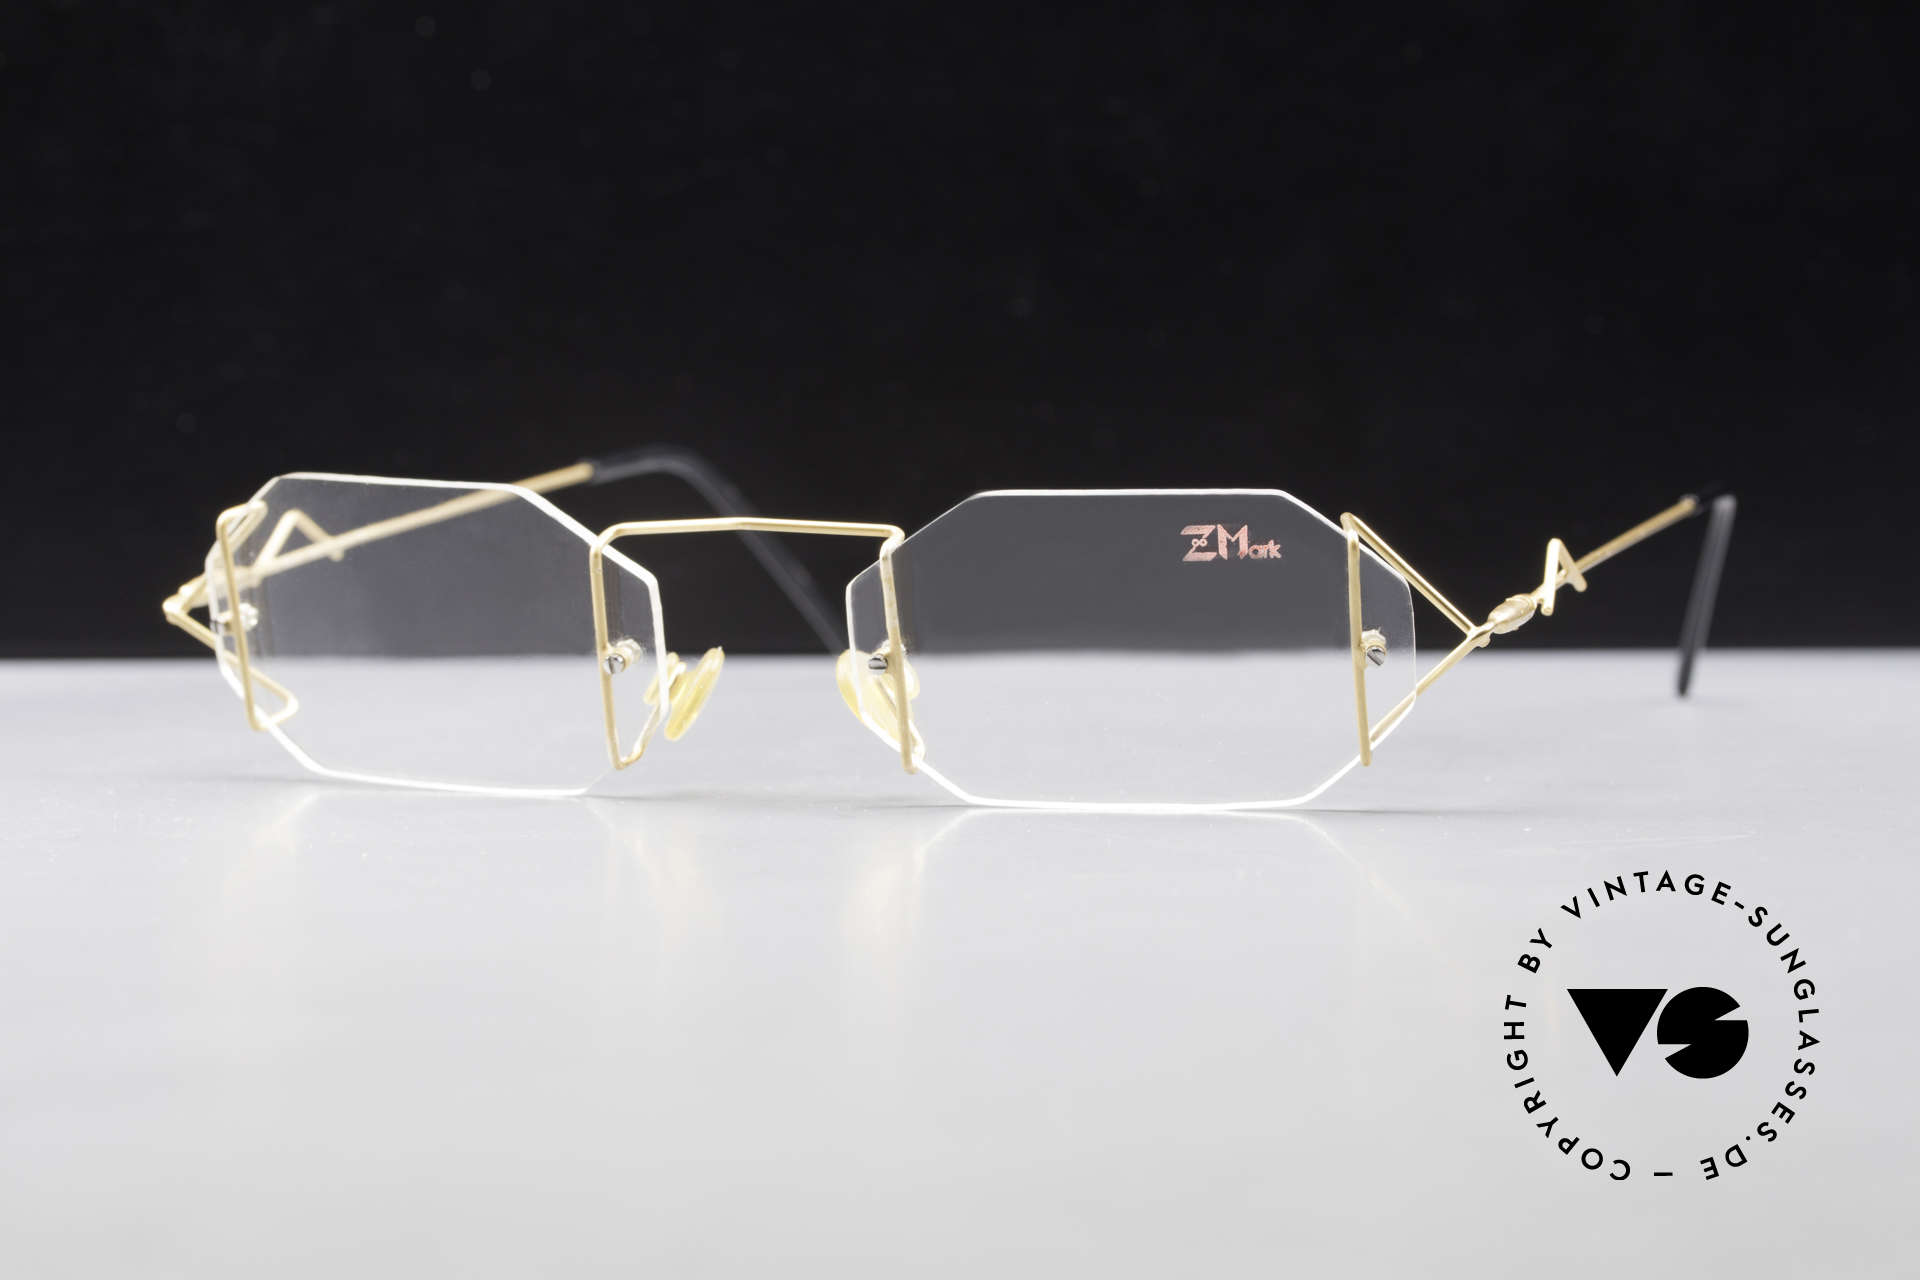 Z Mark 9 Artful 90's Rimless Eyeglasses, filigree & cleverly devised design; simply chichi, Made for Men and Women